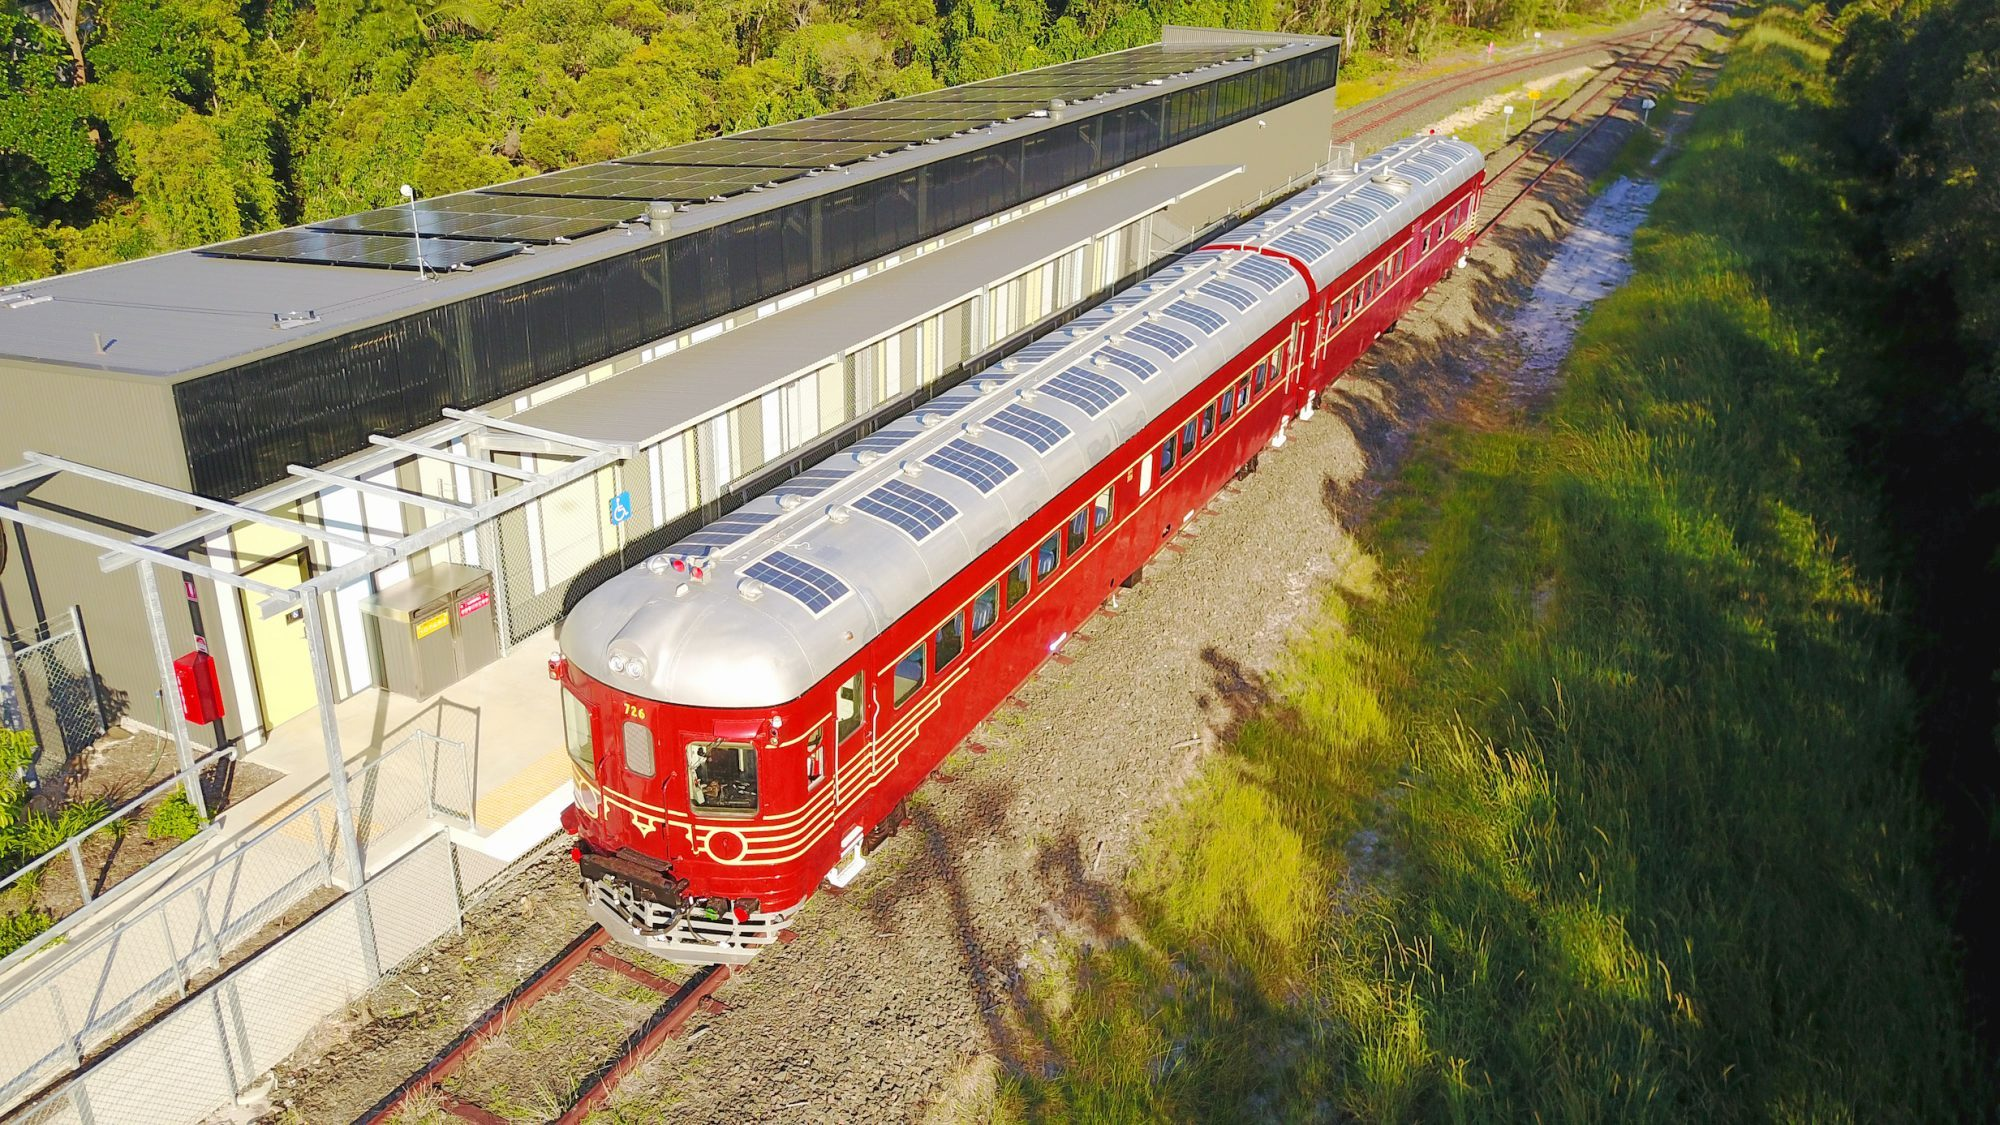 after-13-years-there-is-activity-on-the-byron-bay-train-line-with-the-launch-of-the-worlds-first-solar-train-e1513613185680.jpg